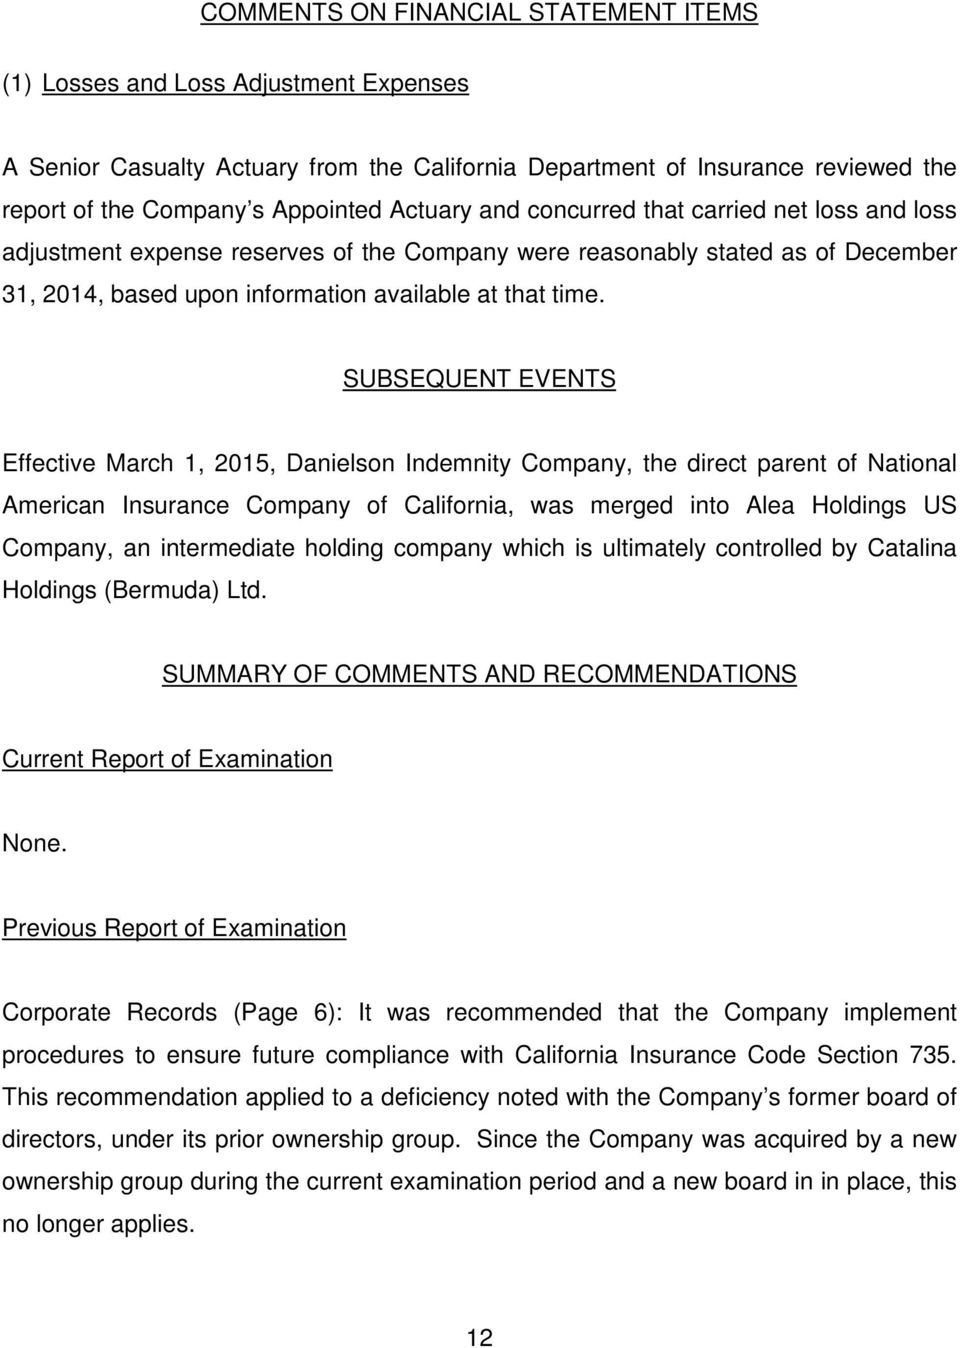 SUBSEQUENT EVENTS Effective March 1, 2015, Danielson Indemnity Company, the direct parent of National American Insurance Company of California, was merged into Alea Holdings US Company, an